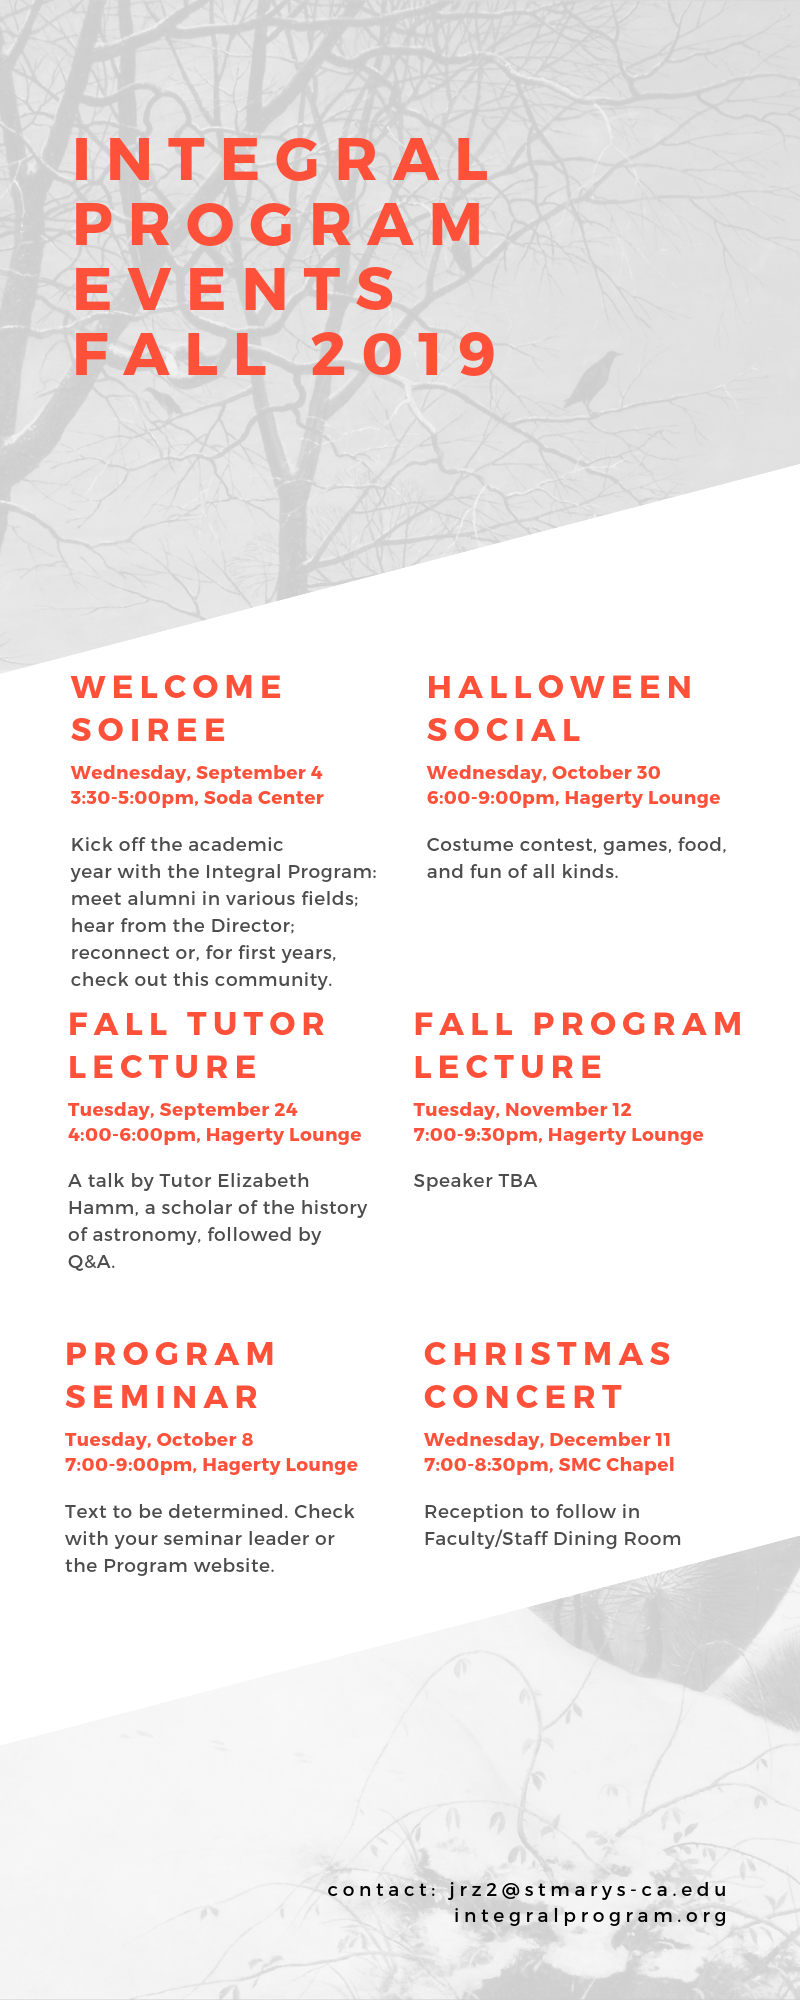 Integral Program events fall 2019